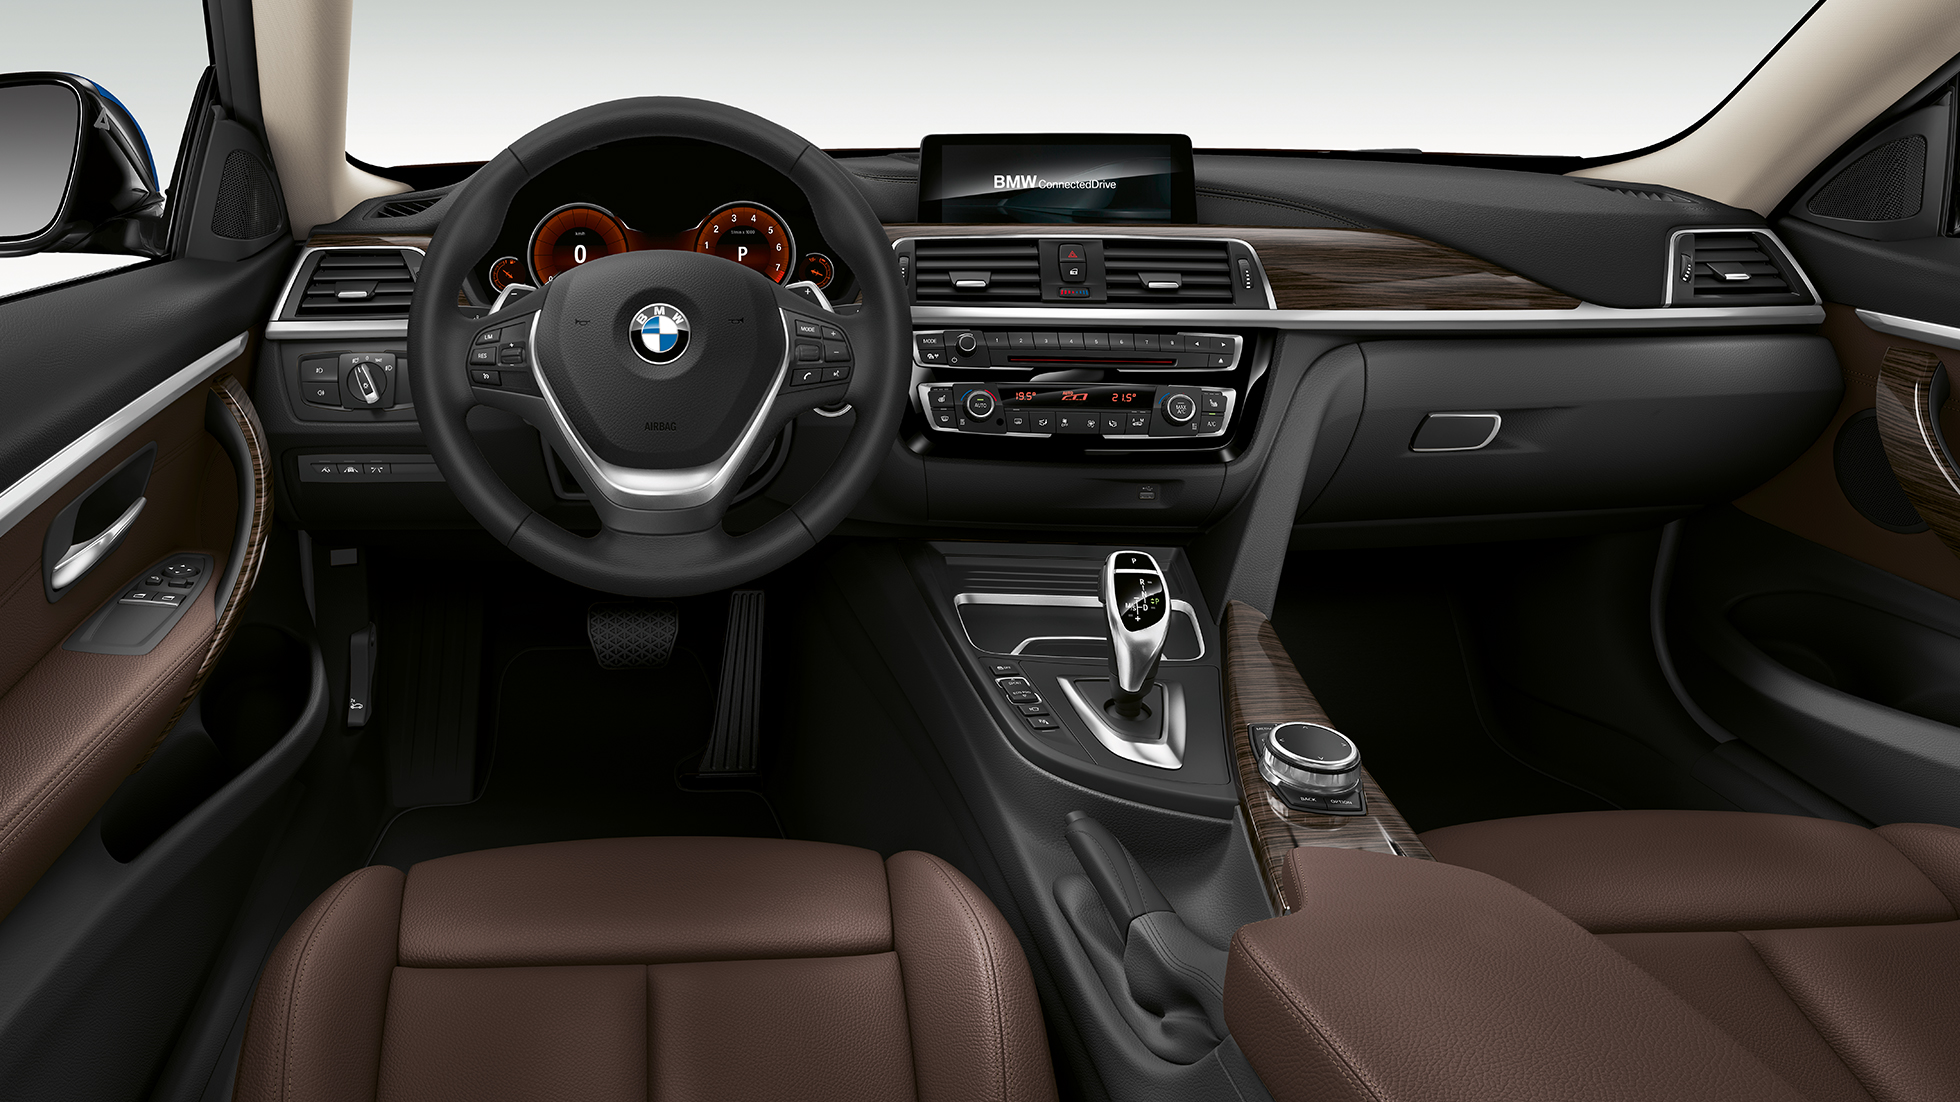 BMW 4er Coupé, Modell Luxury Line Cockpit